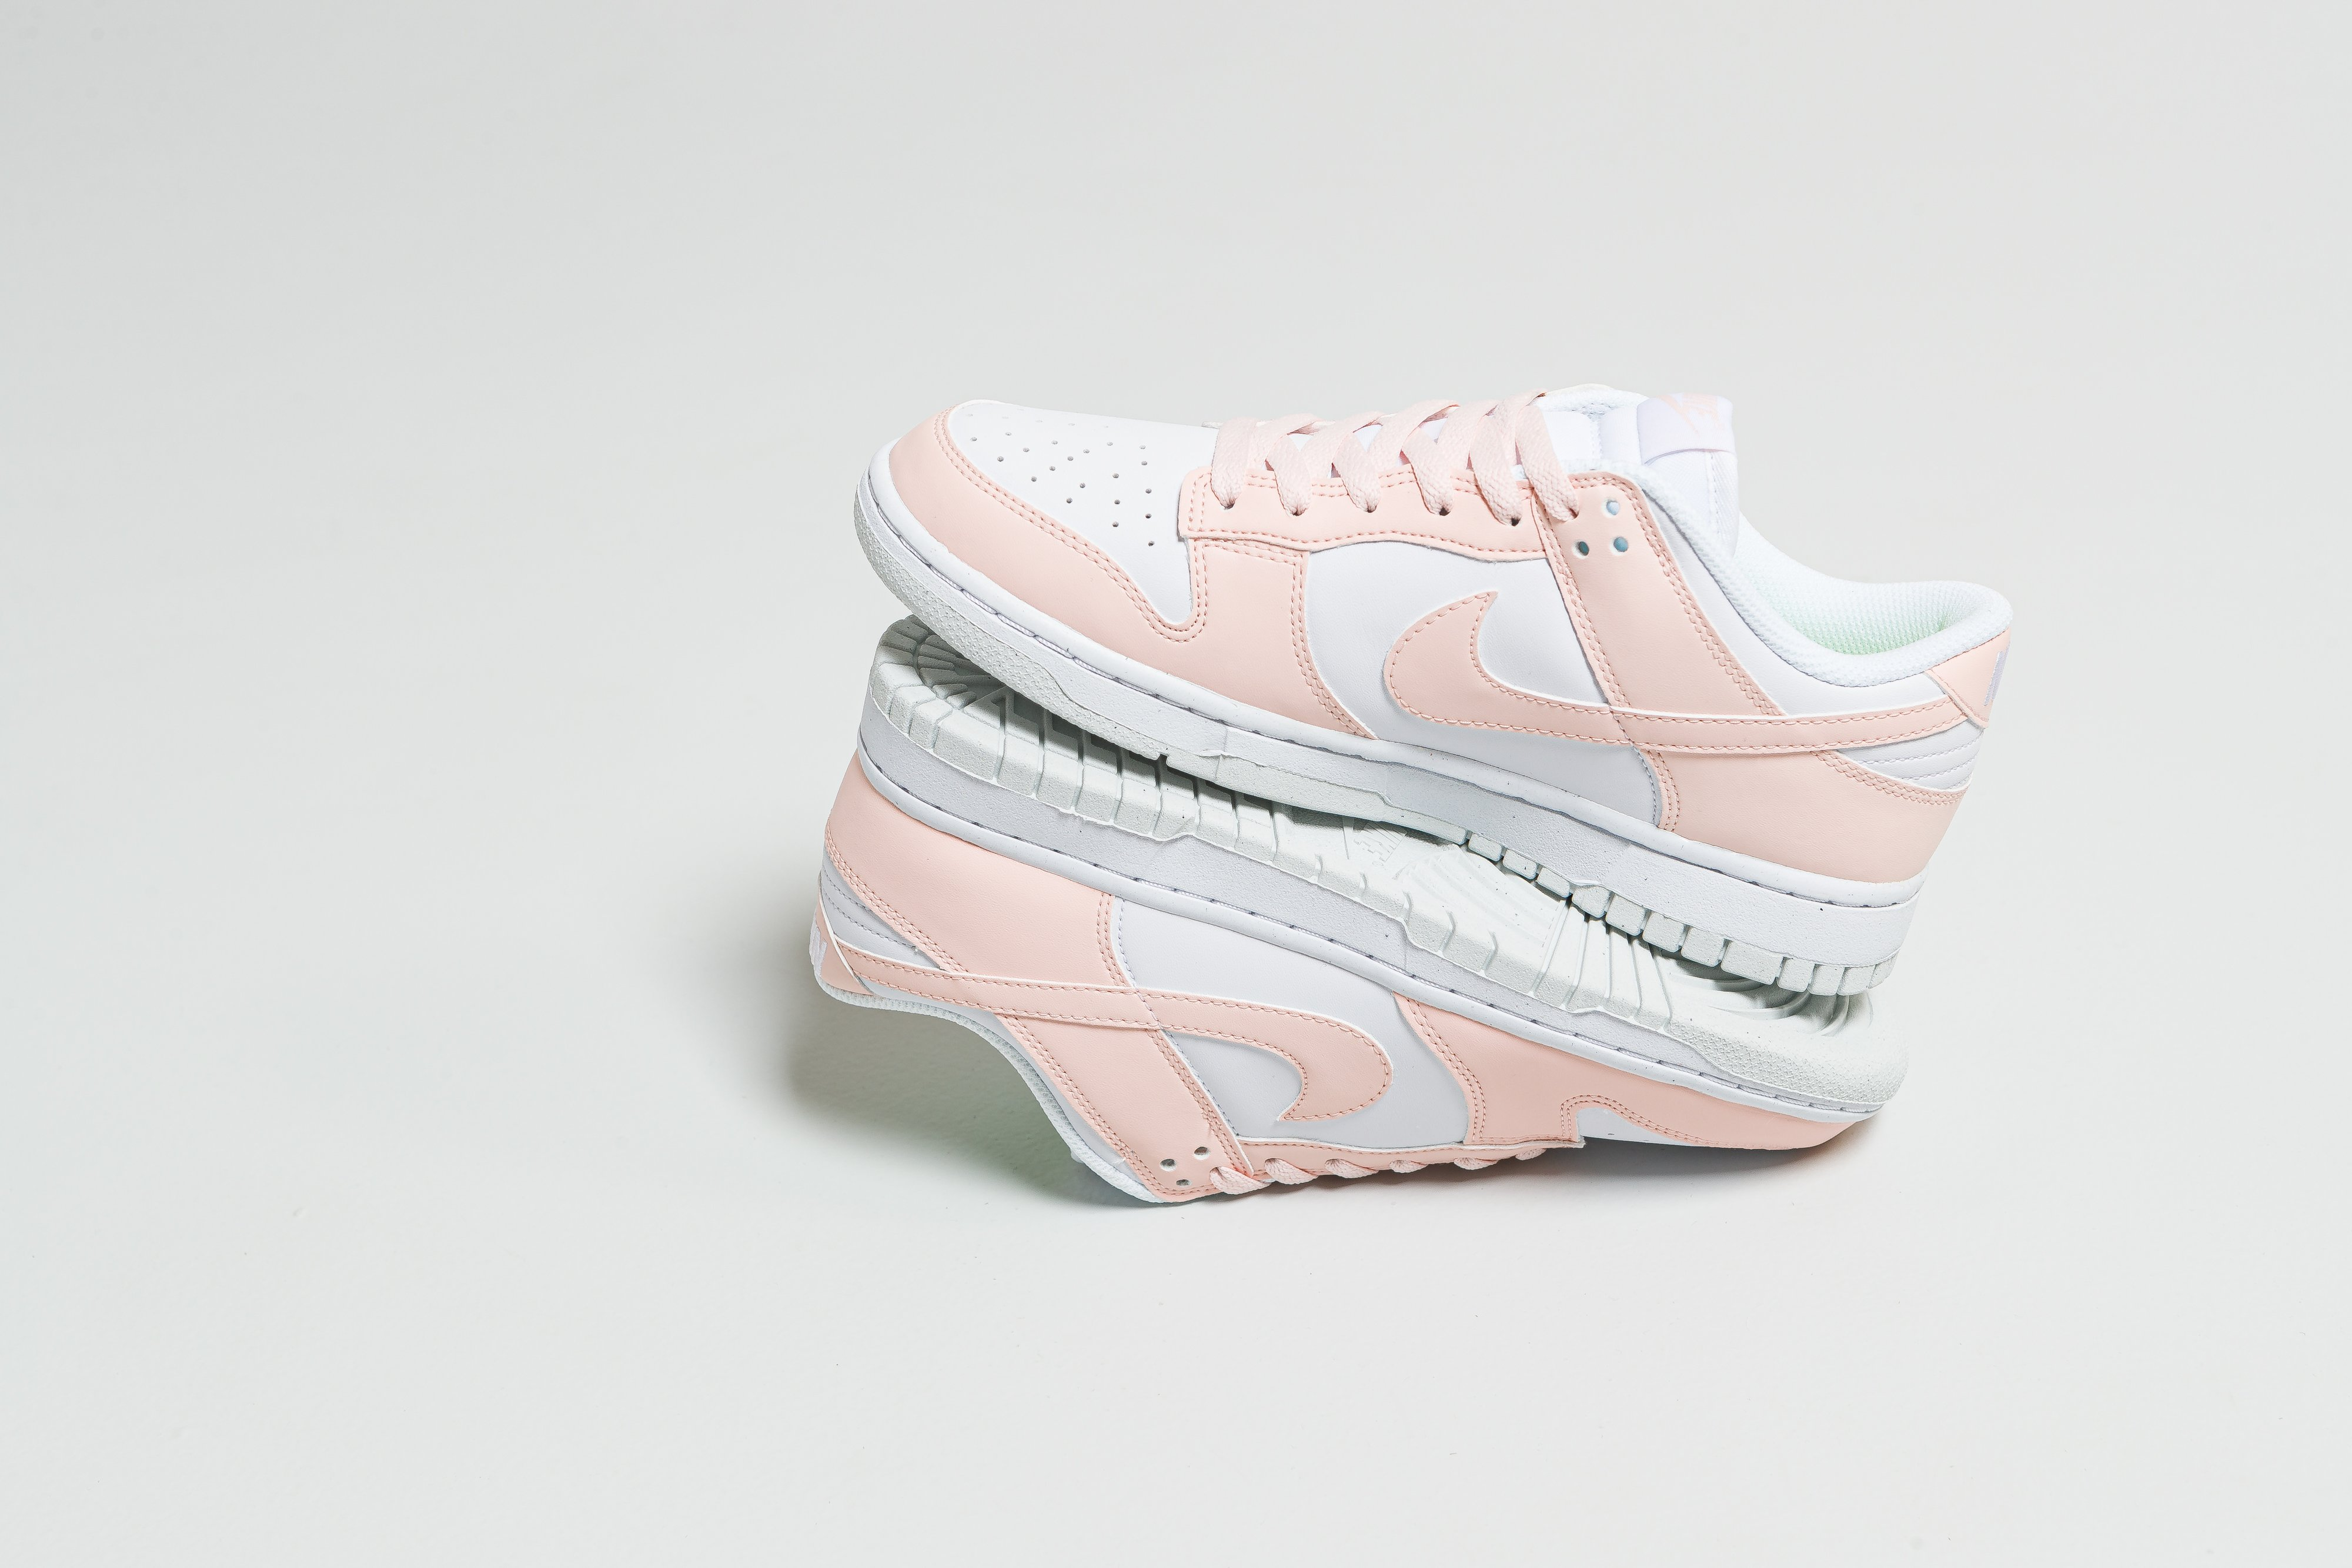 Up There Launches - Nike Women's Dunk Low Nature Next 'Pale Coral'